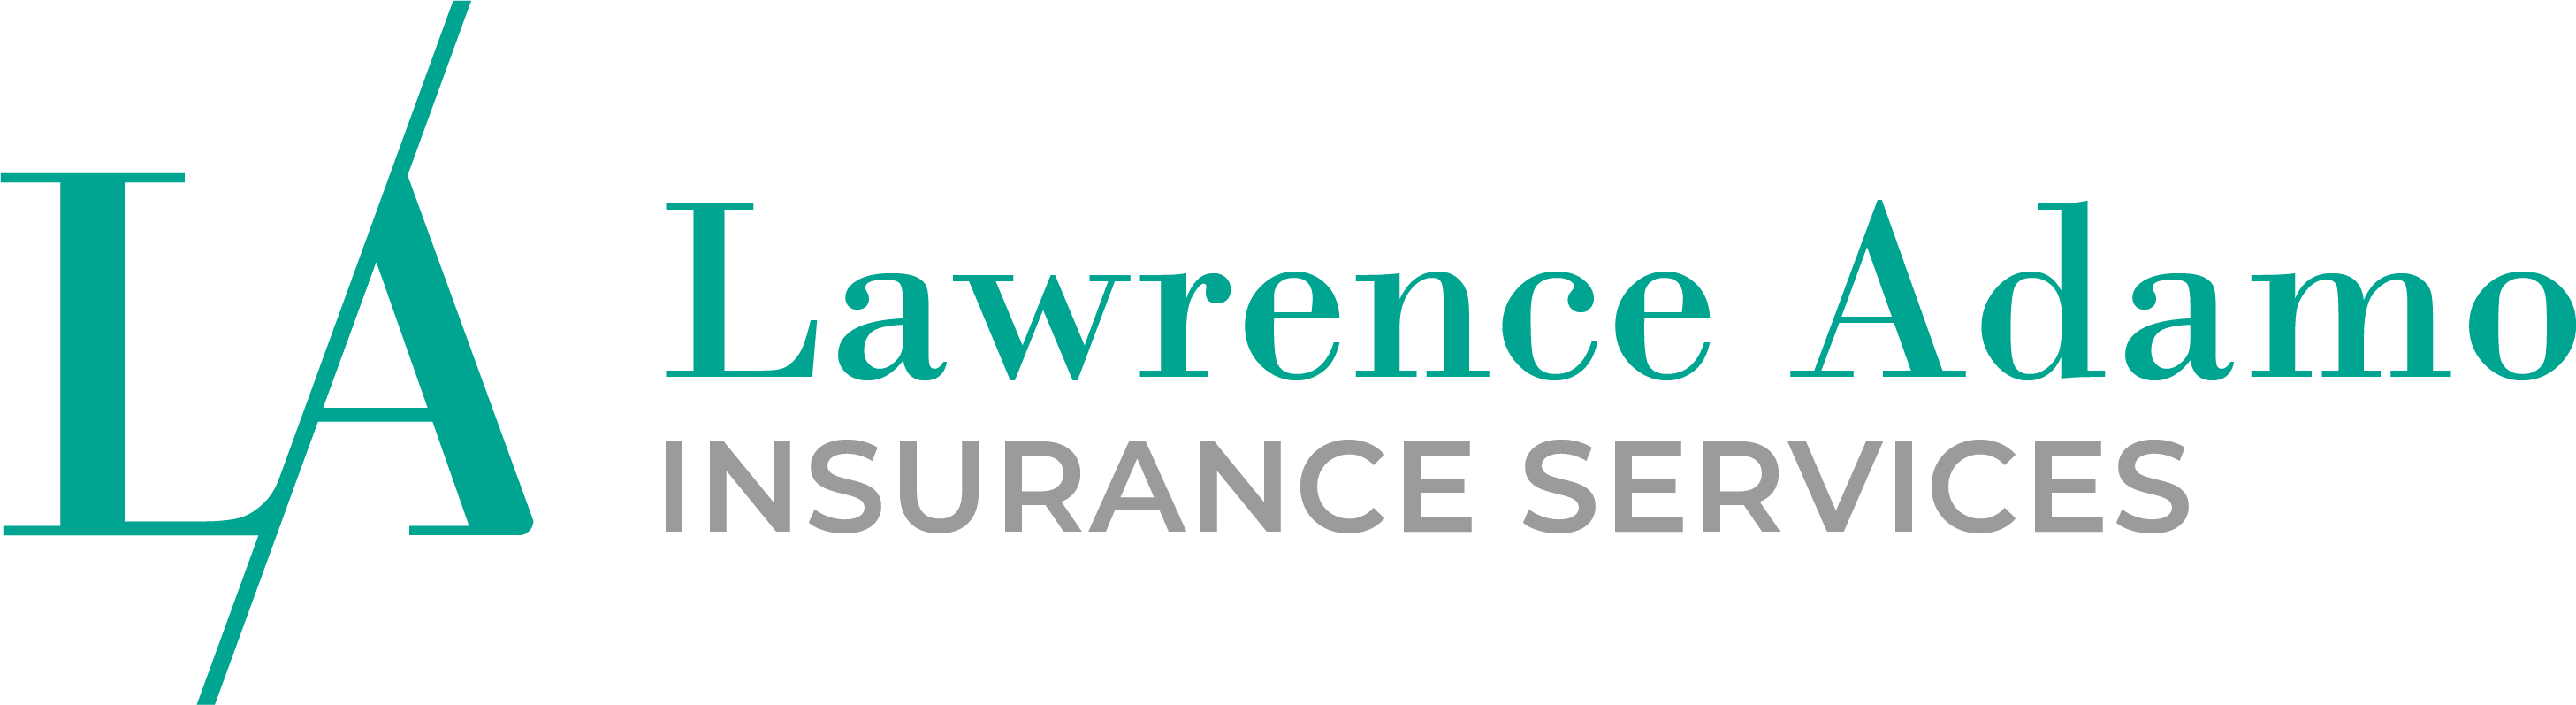 Lawrence Adamo Insurance Services